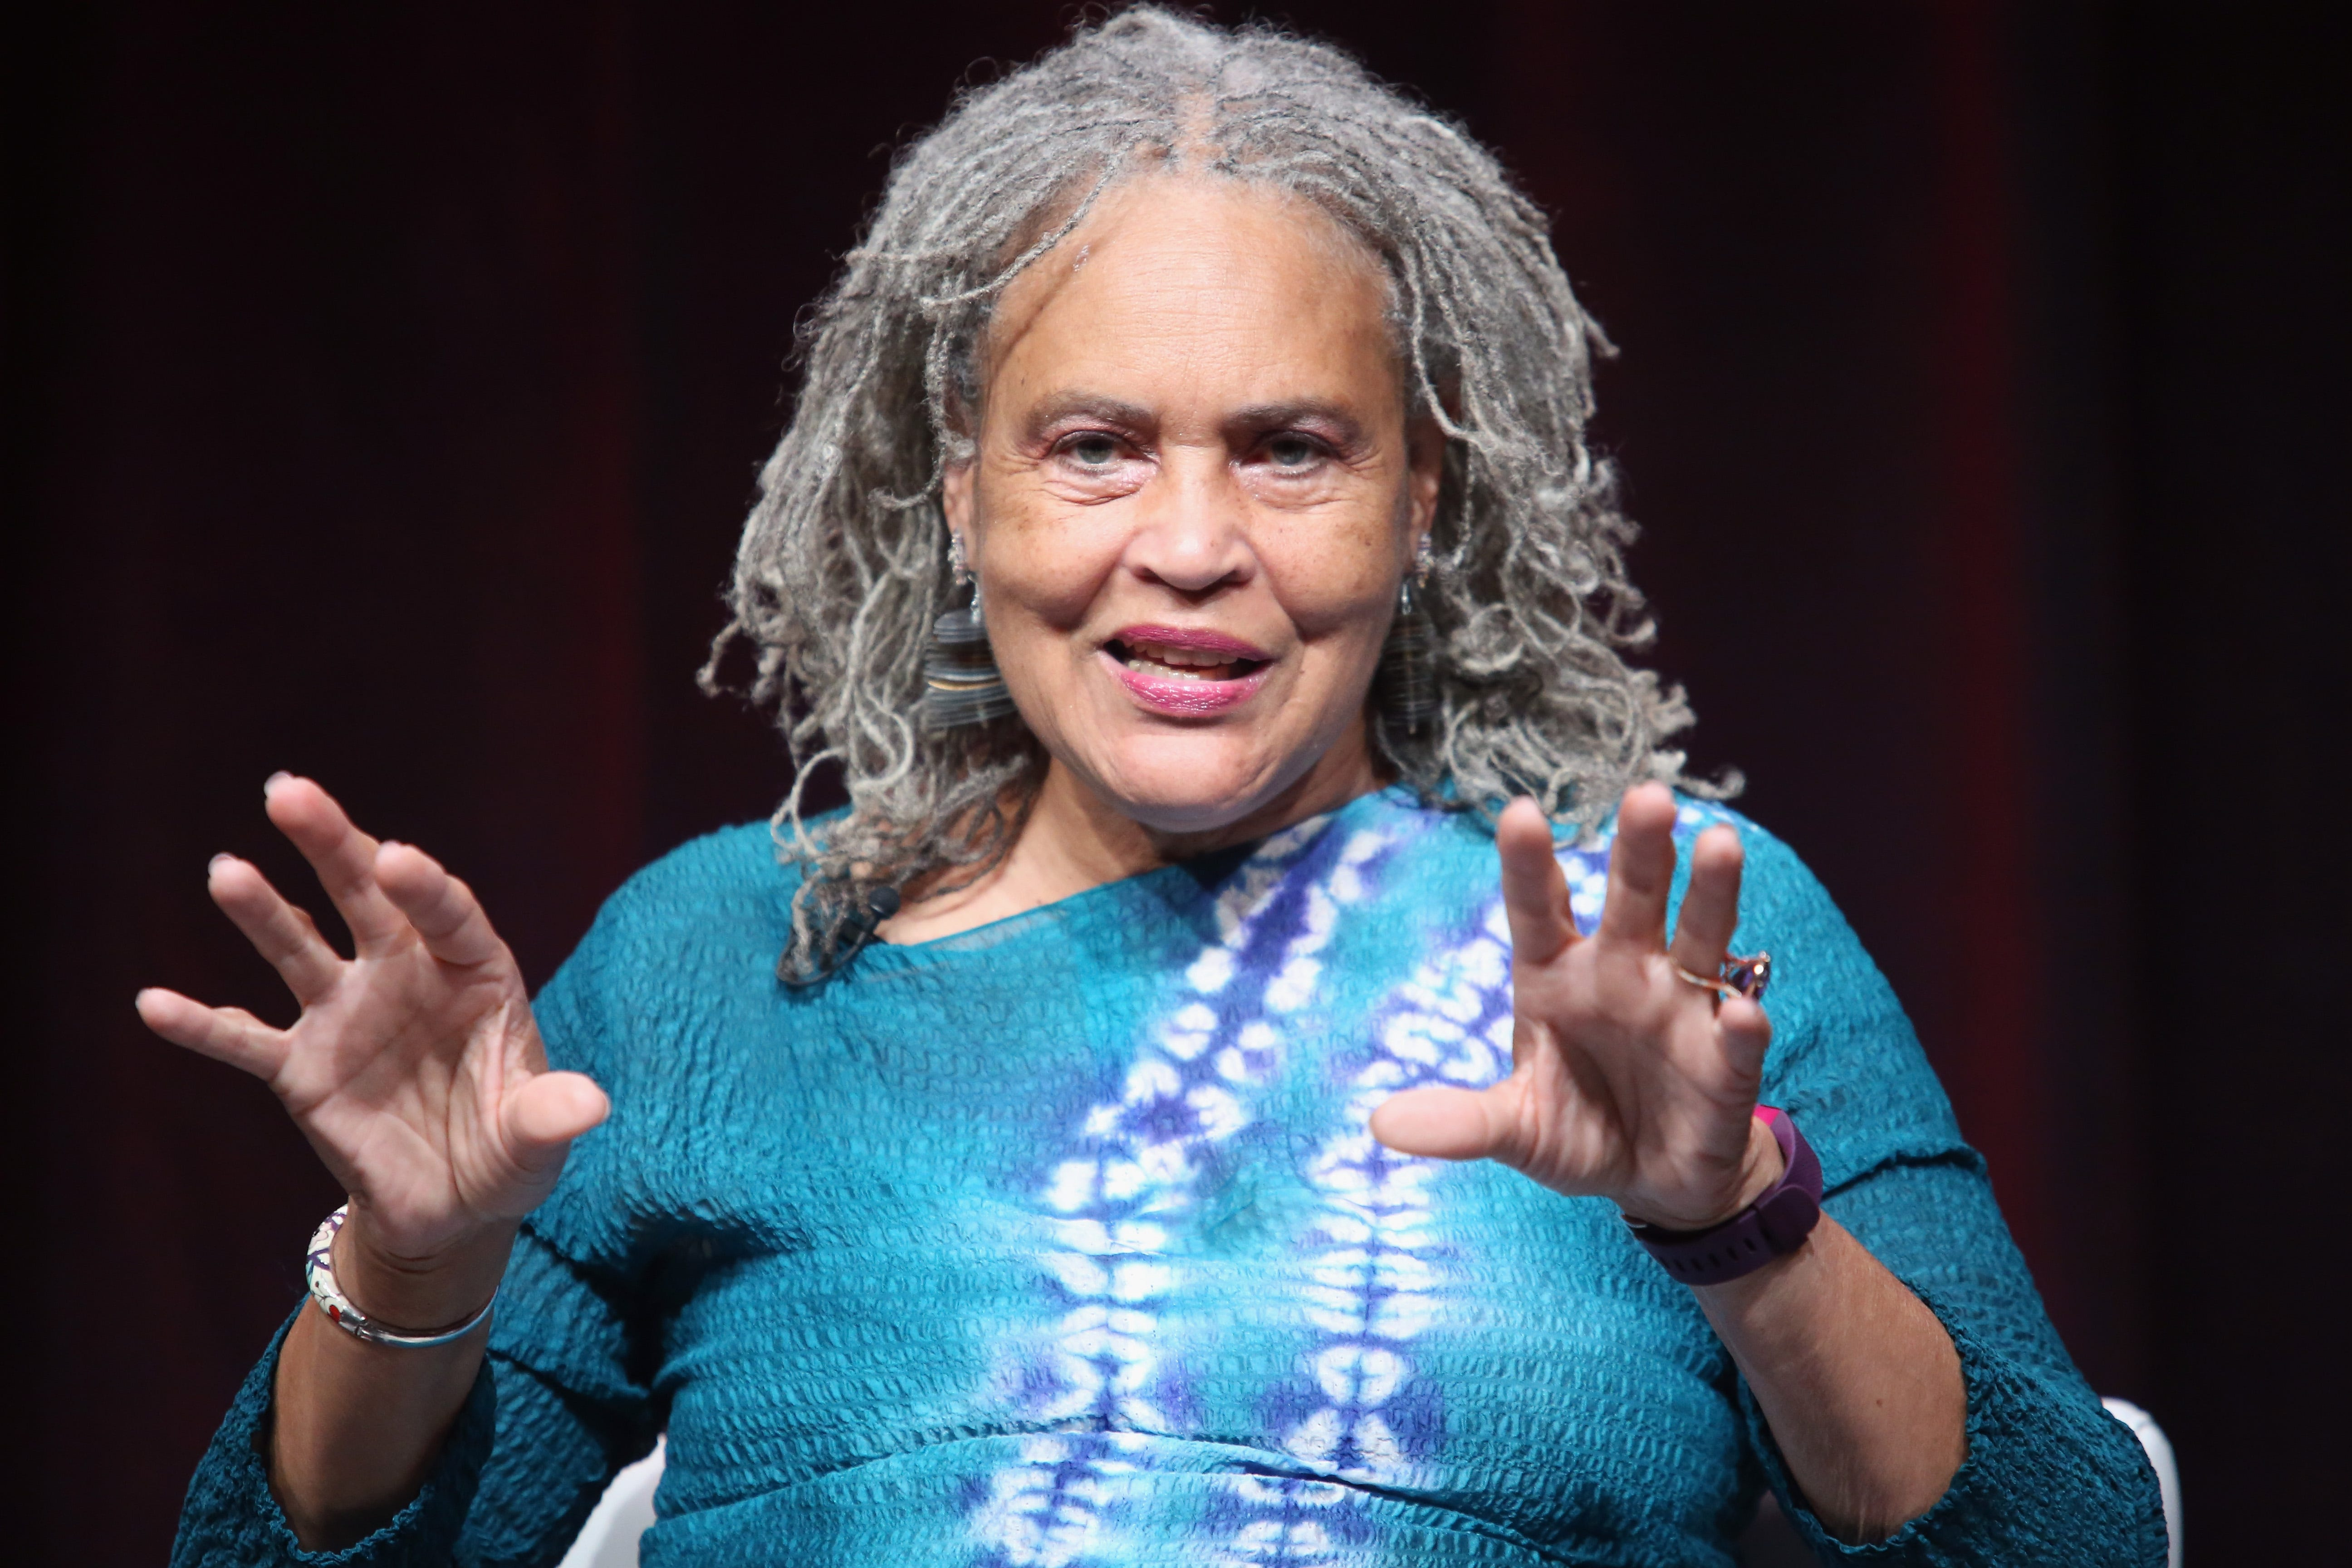 """Journalist Charlayne Hunter-Gault speaks onstage during the """"Black America Since MLK: And Still I Rise"""" panel discussion at the PBS portion of the 2016 Television Critics Association Summer Tour at The Beverly Hilton Hotel on July 29, 2016, in Beverly Hills, Calif."""